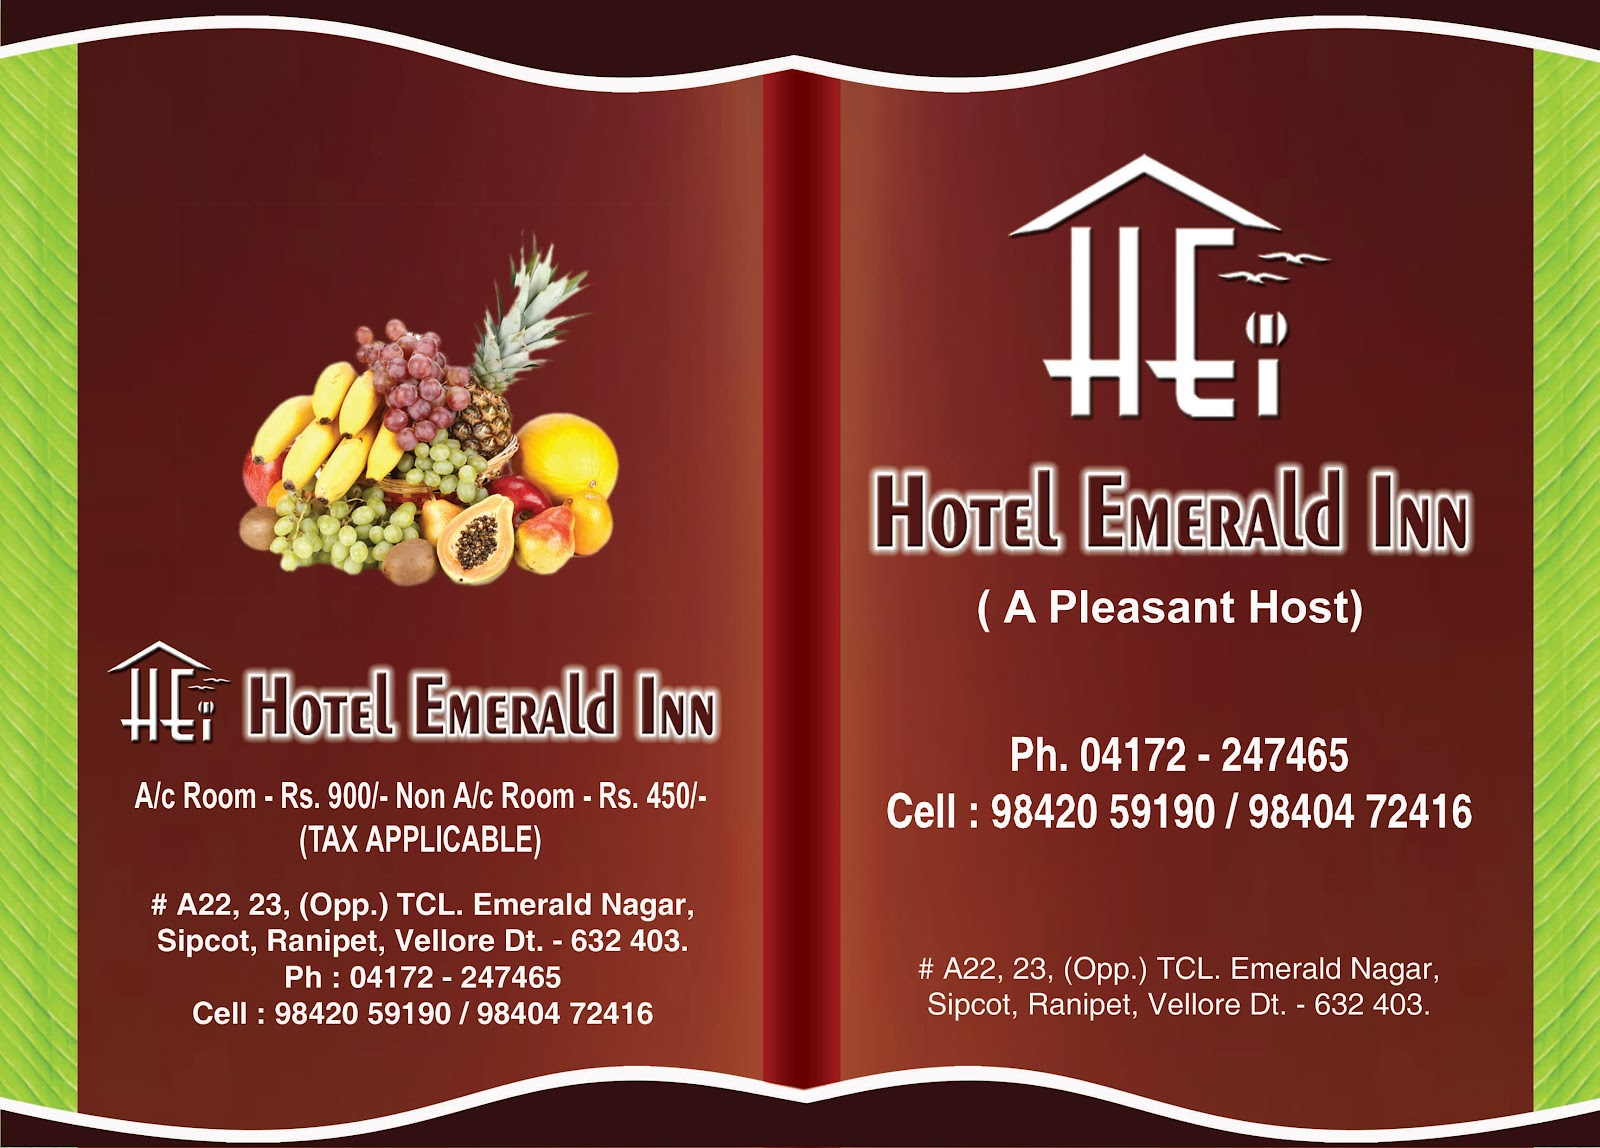 Hotel Emerald Inn Hotel Menu Card